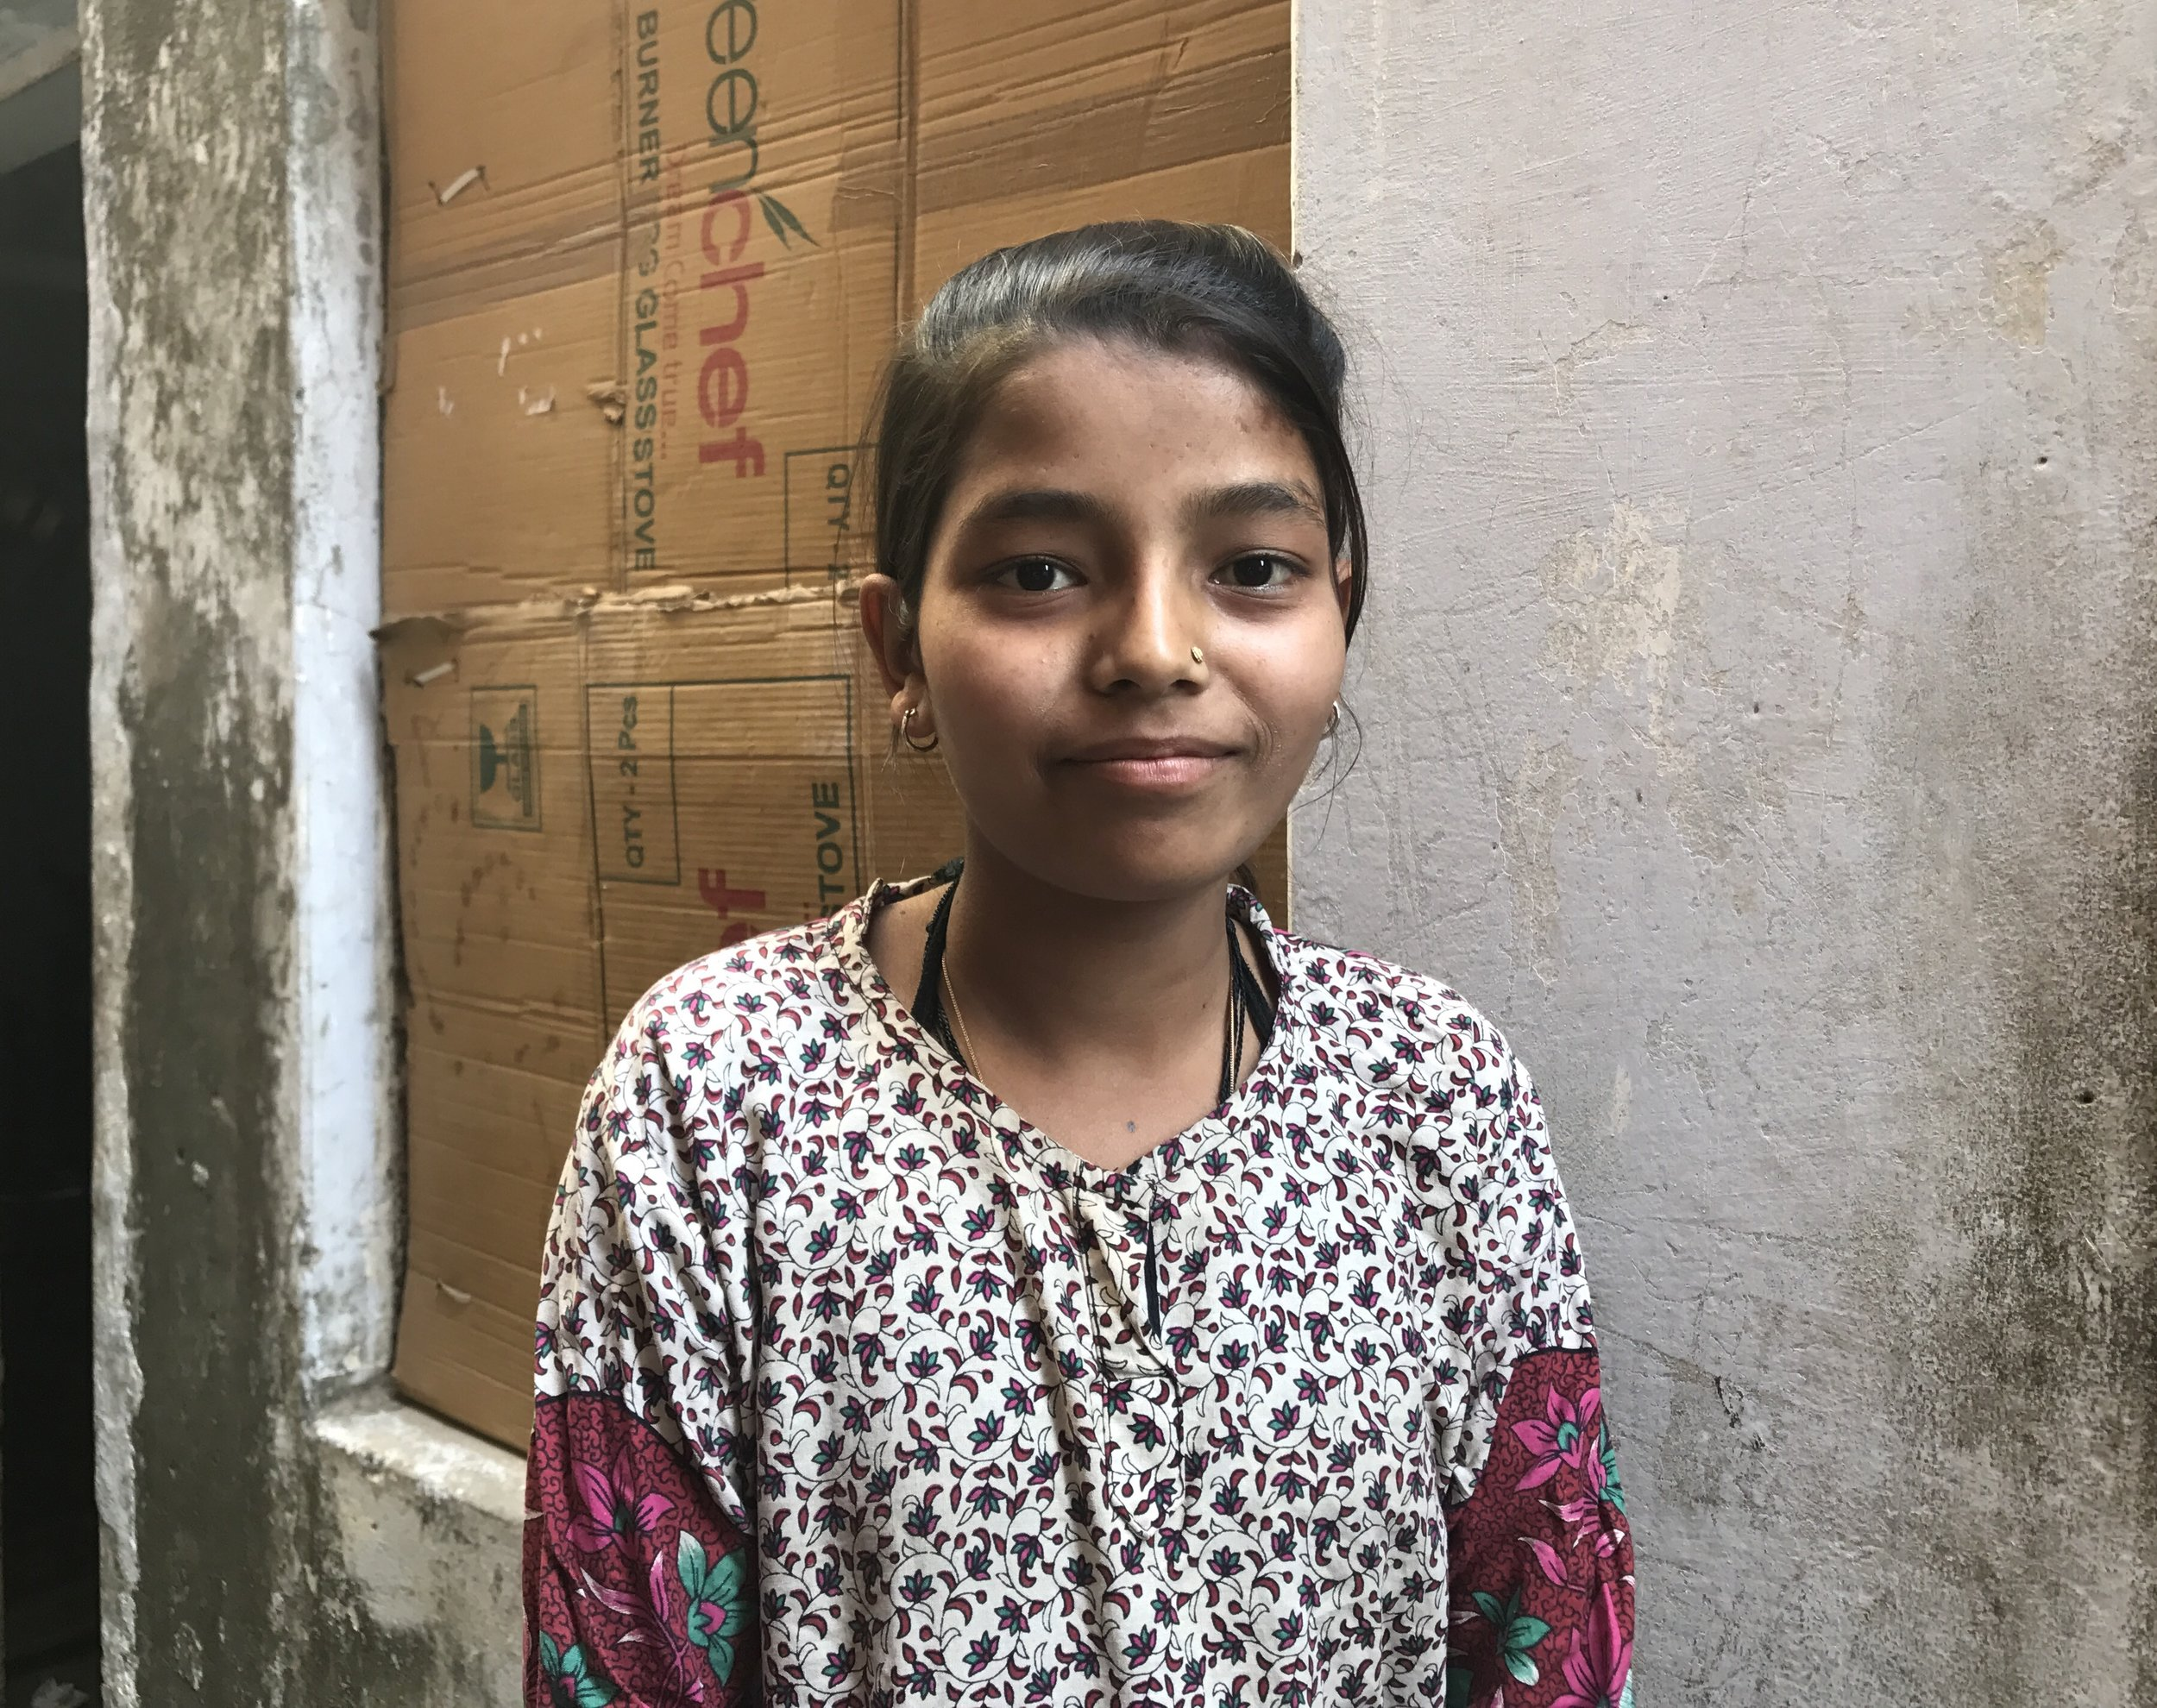 """""""I was 10 years old when I started going to school. I want to become something good. I want to make my parents proud."""""""